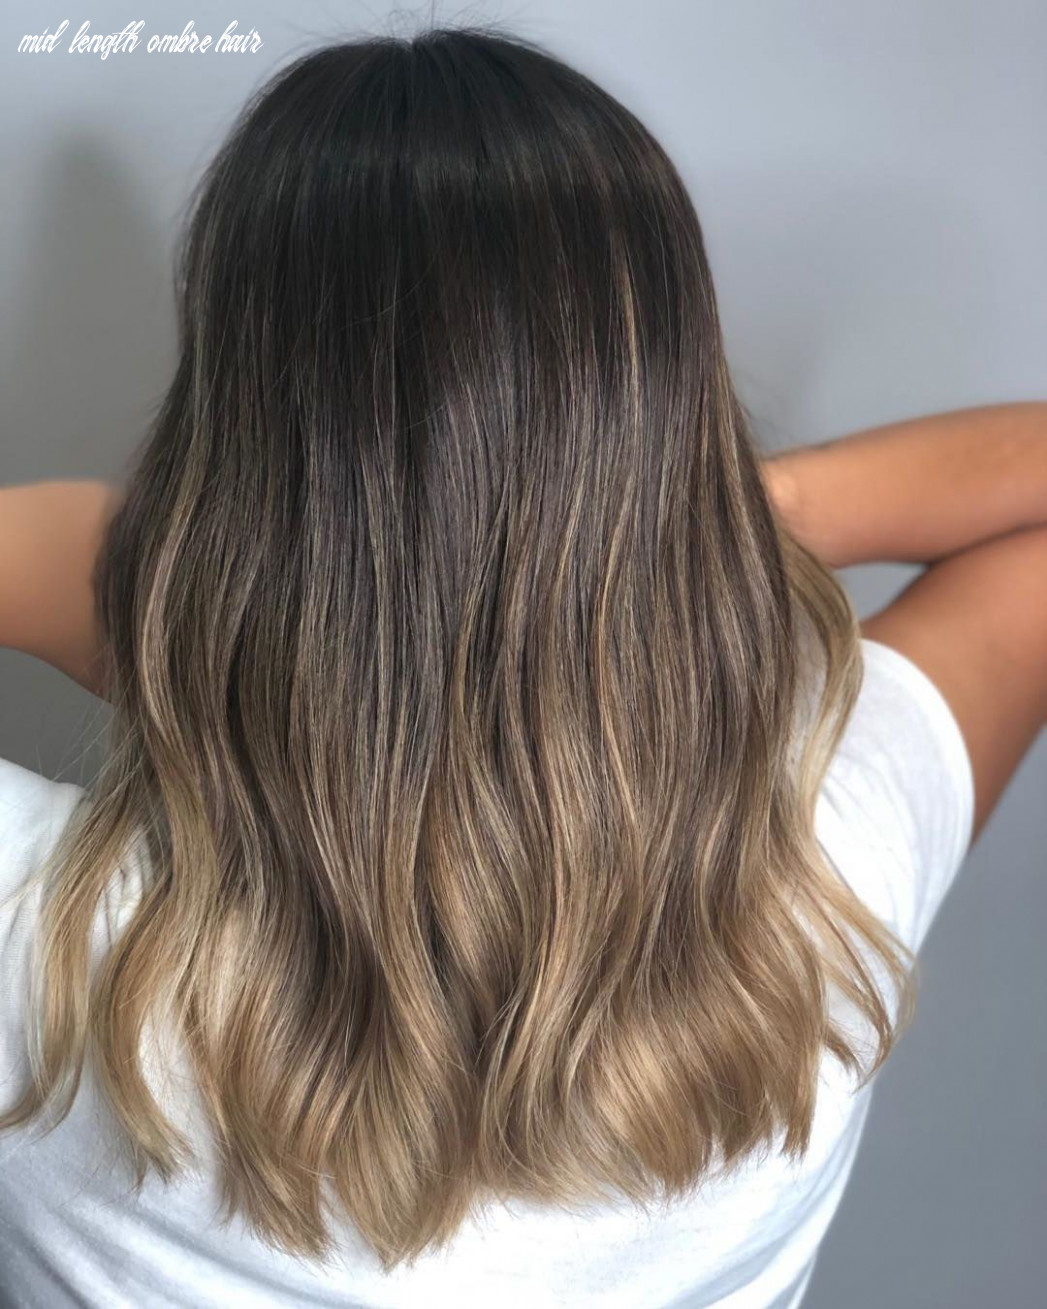 12 ombre hair colors for medium length brunettes   ombre hair